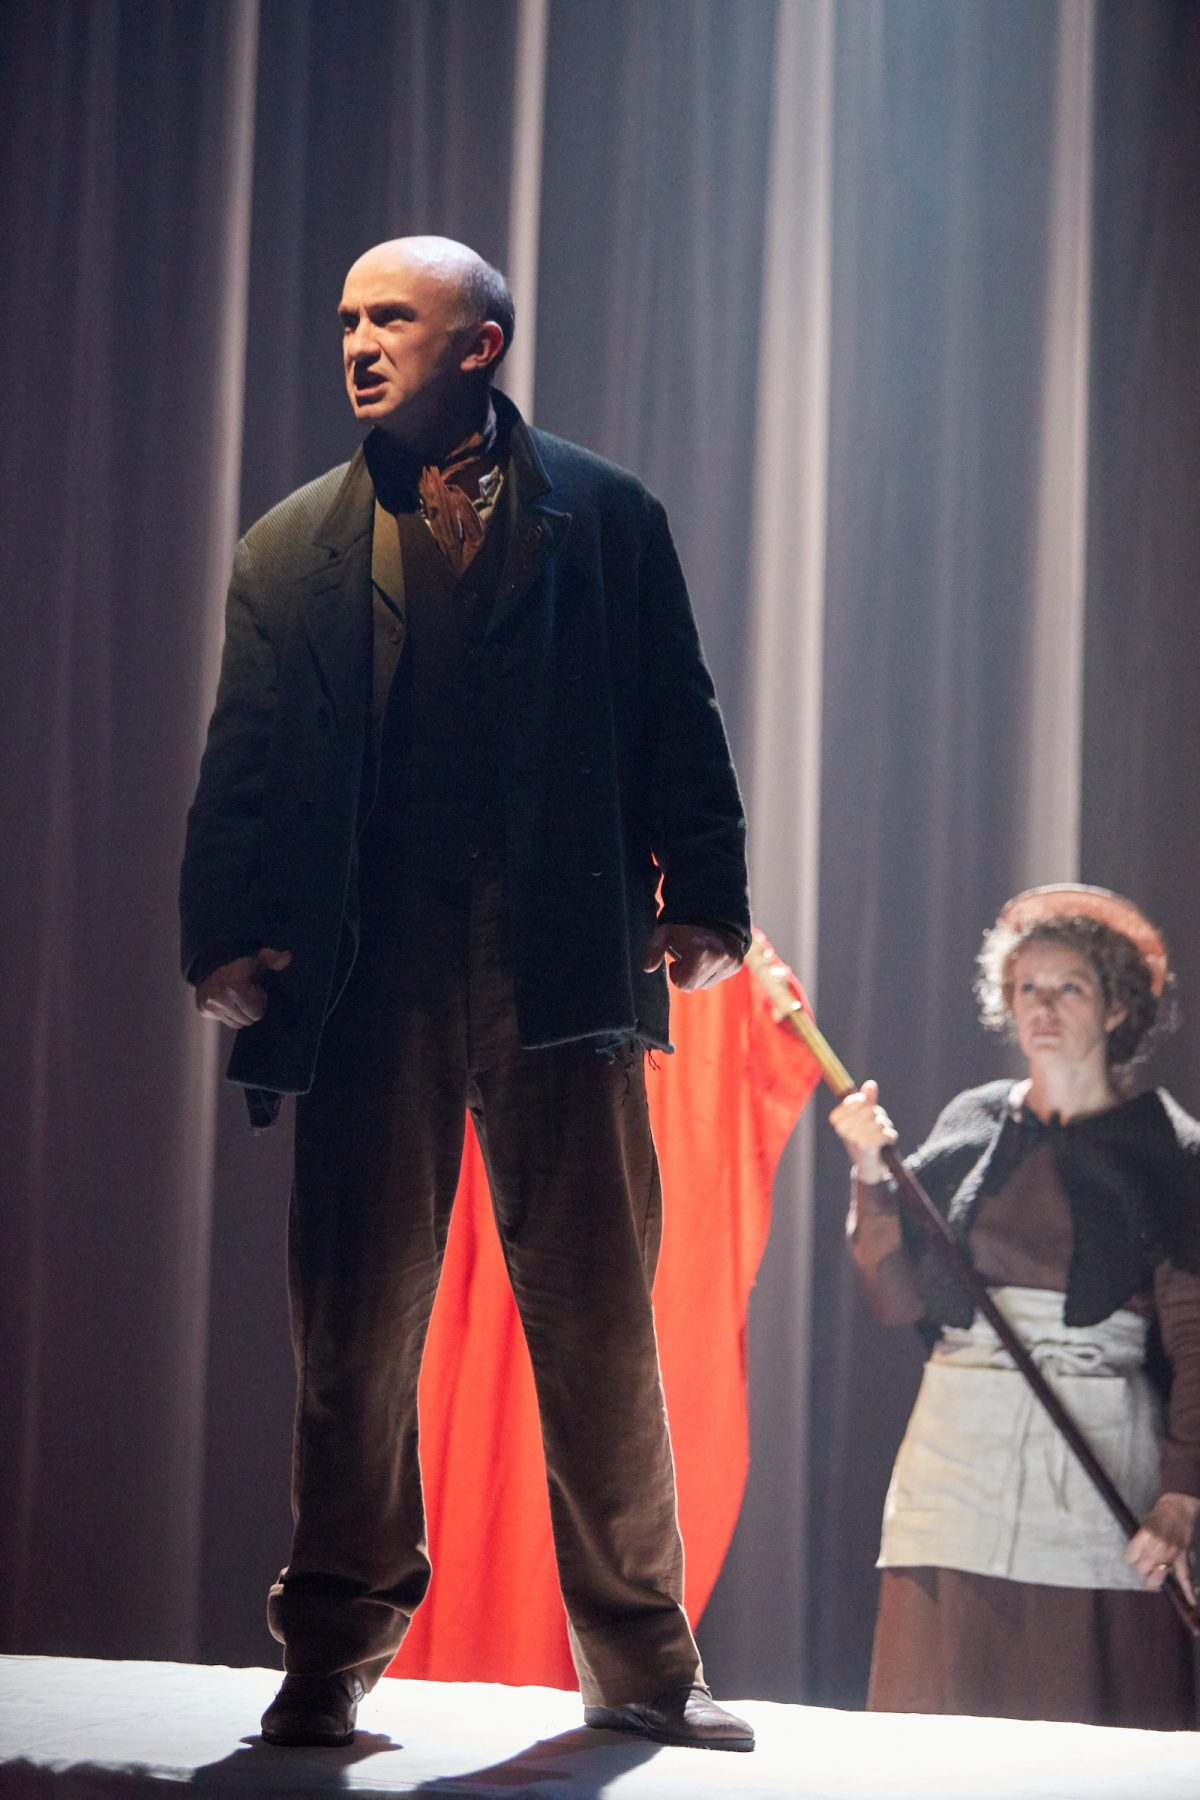 AFTER THE RUN ON THE CRUCIBLE MAIN STAGE, I TOOK THE PLAY ON TOUR TO OXFORD, BRIGHTON, YORK, SALISBURY, MALVERN AND CAMBRIDGE, RUNNING THE TECH AND NOTING THE FIRST NIGHT AT EACH THEATRE -